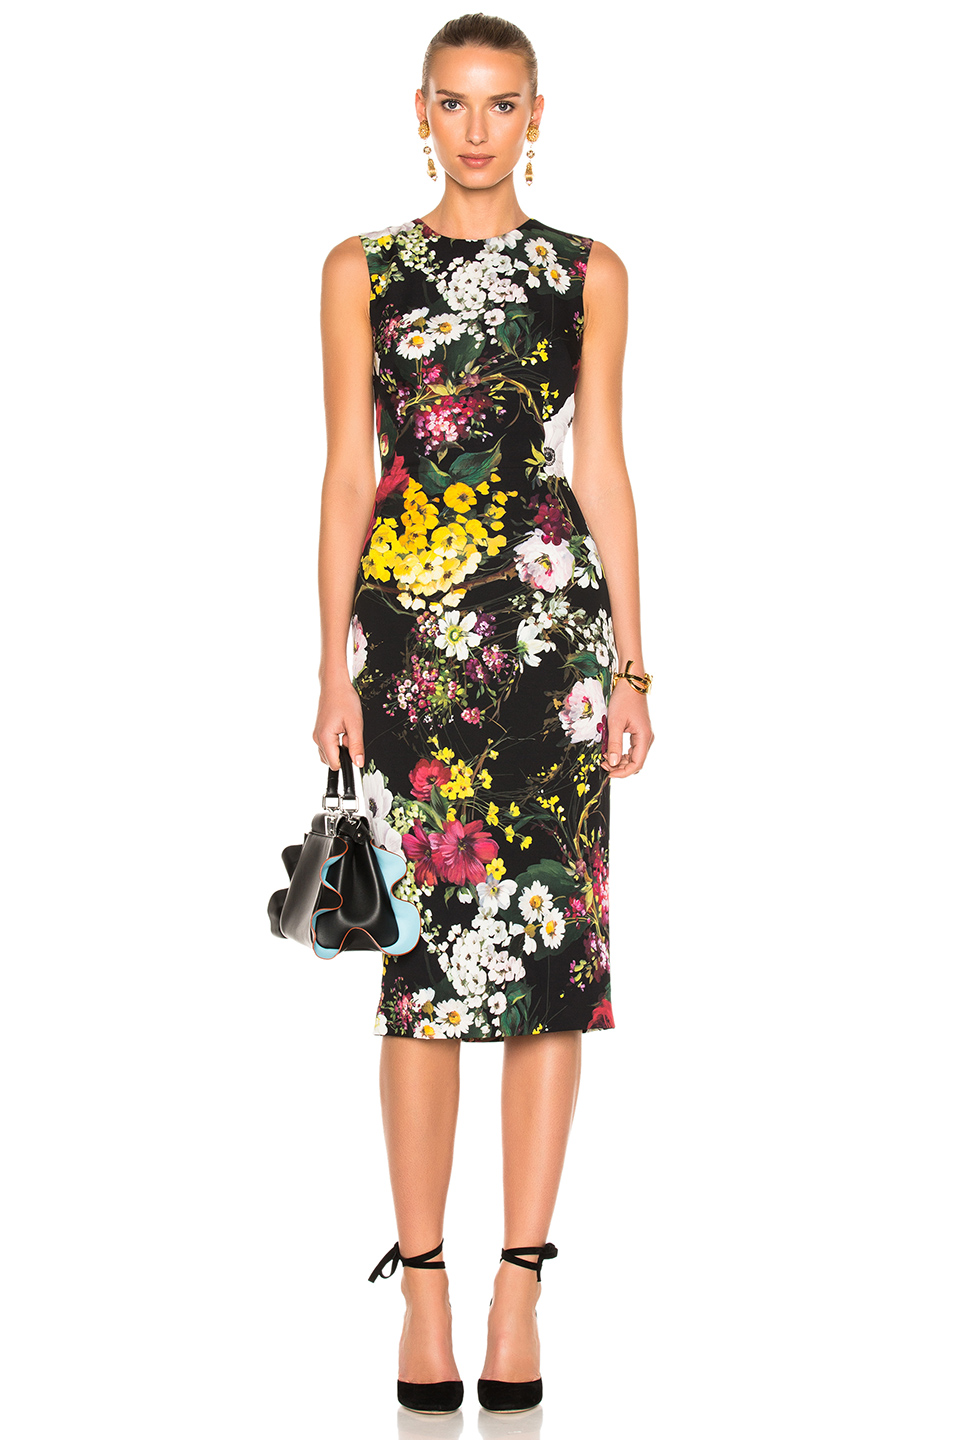 Dolce & Gabbana Floral Sleeveless Midi Dress in Black,Floral,Green,Red,Yellow